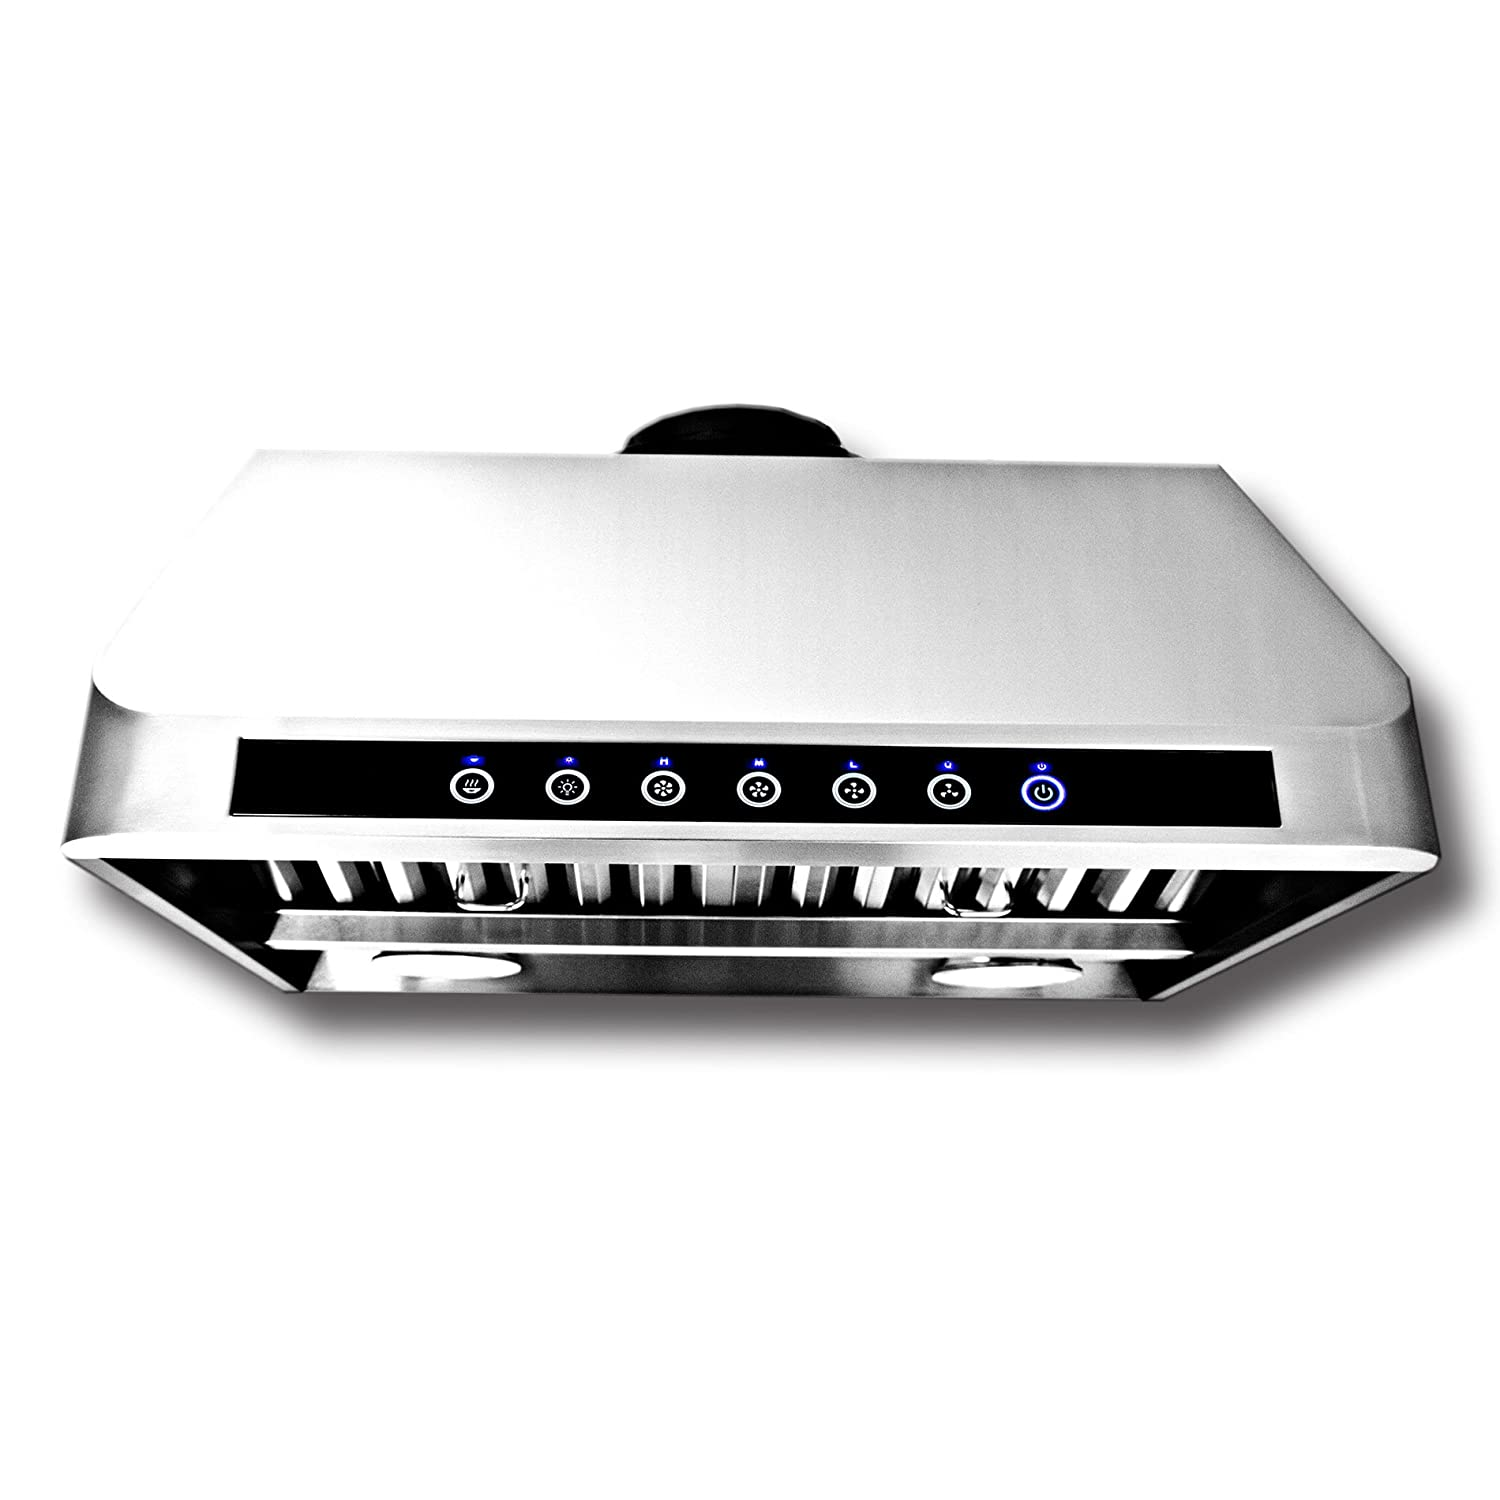 Proline PLJW 101 Wall/Under Cabinet Range Hood - 4 Speed - 2000 Max CFM - Stainless Professional Baffle Filters Dishwasher Safe - 3 Year Warranty - Sizes include 30 36 42 48 54 and 60 inch